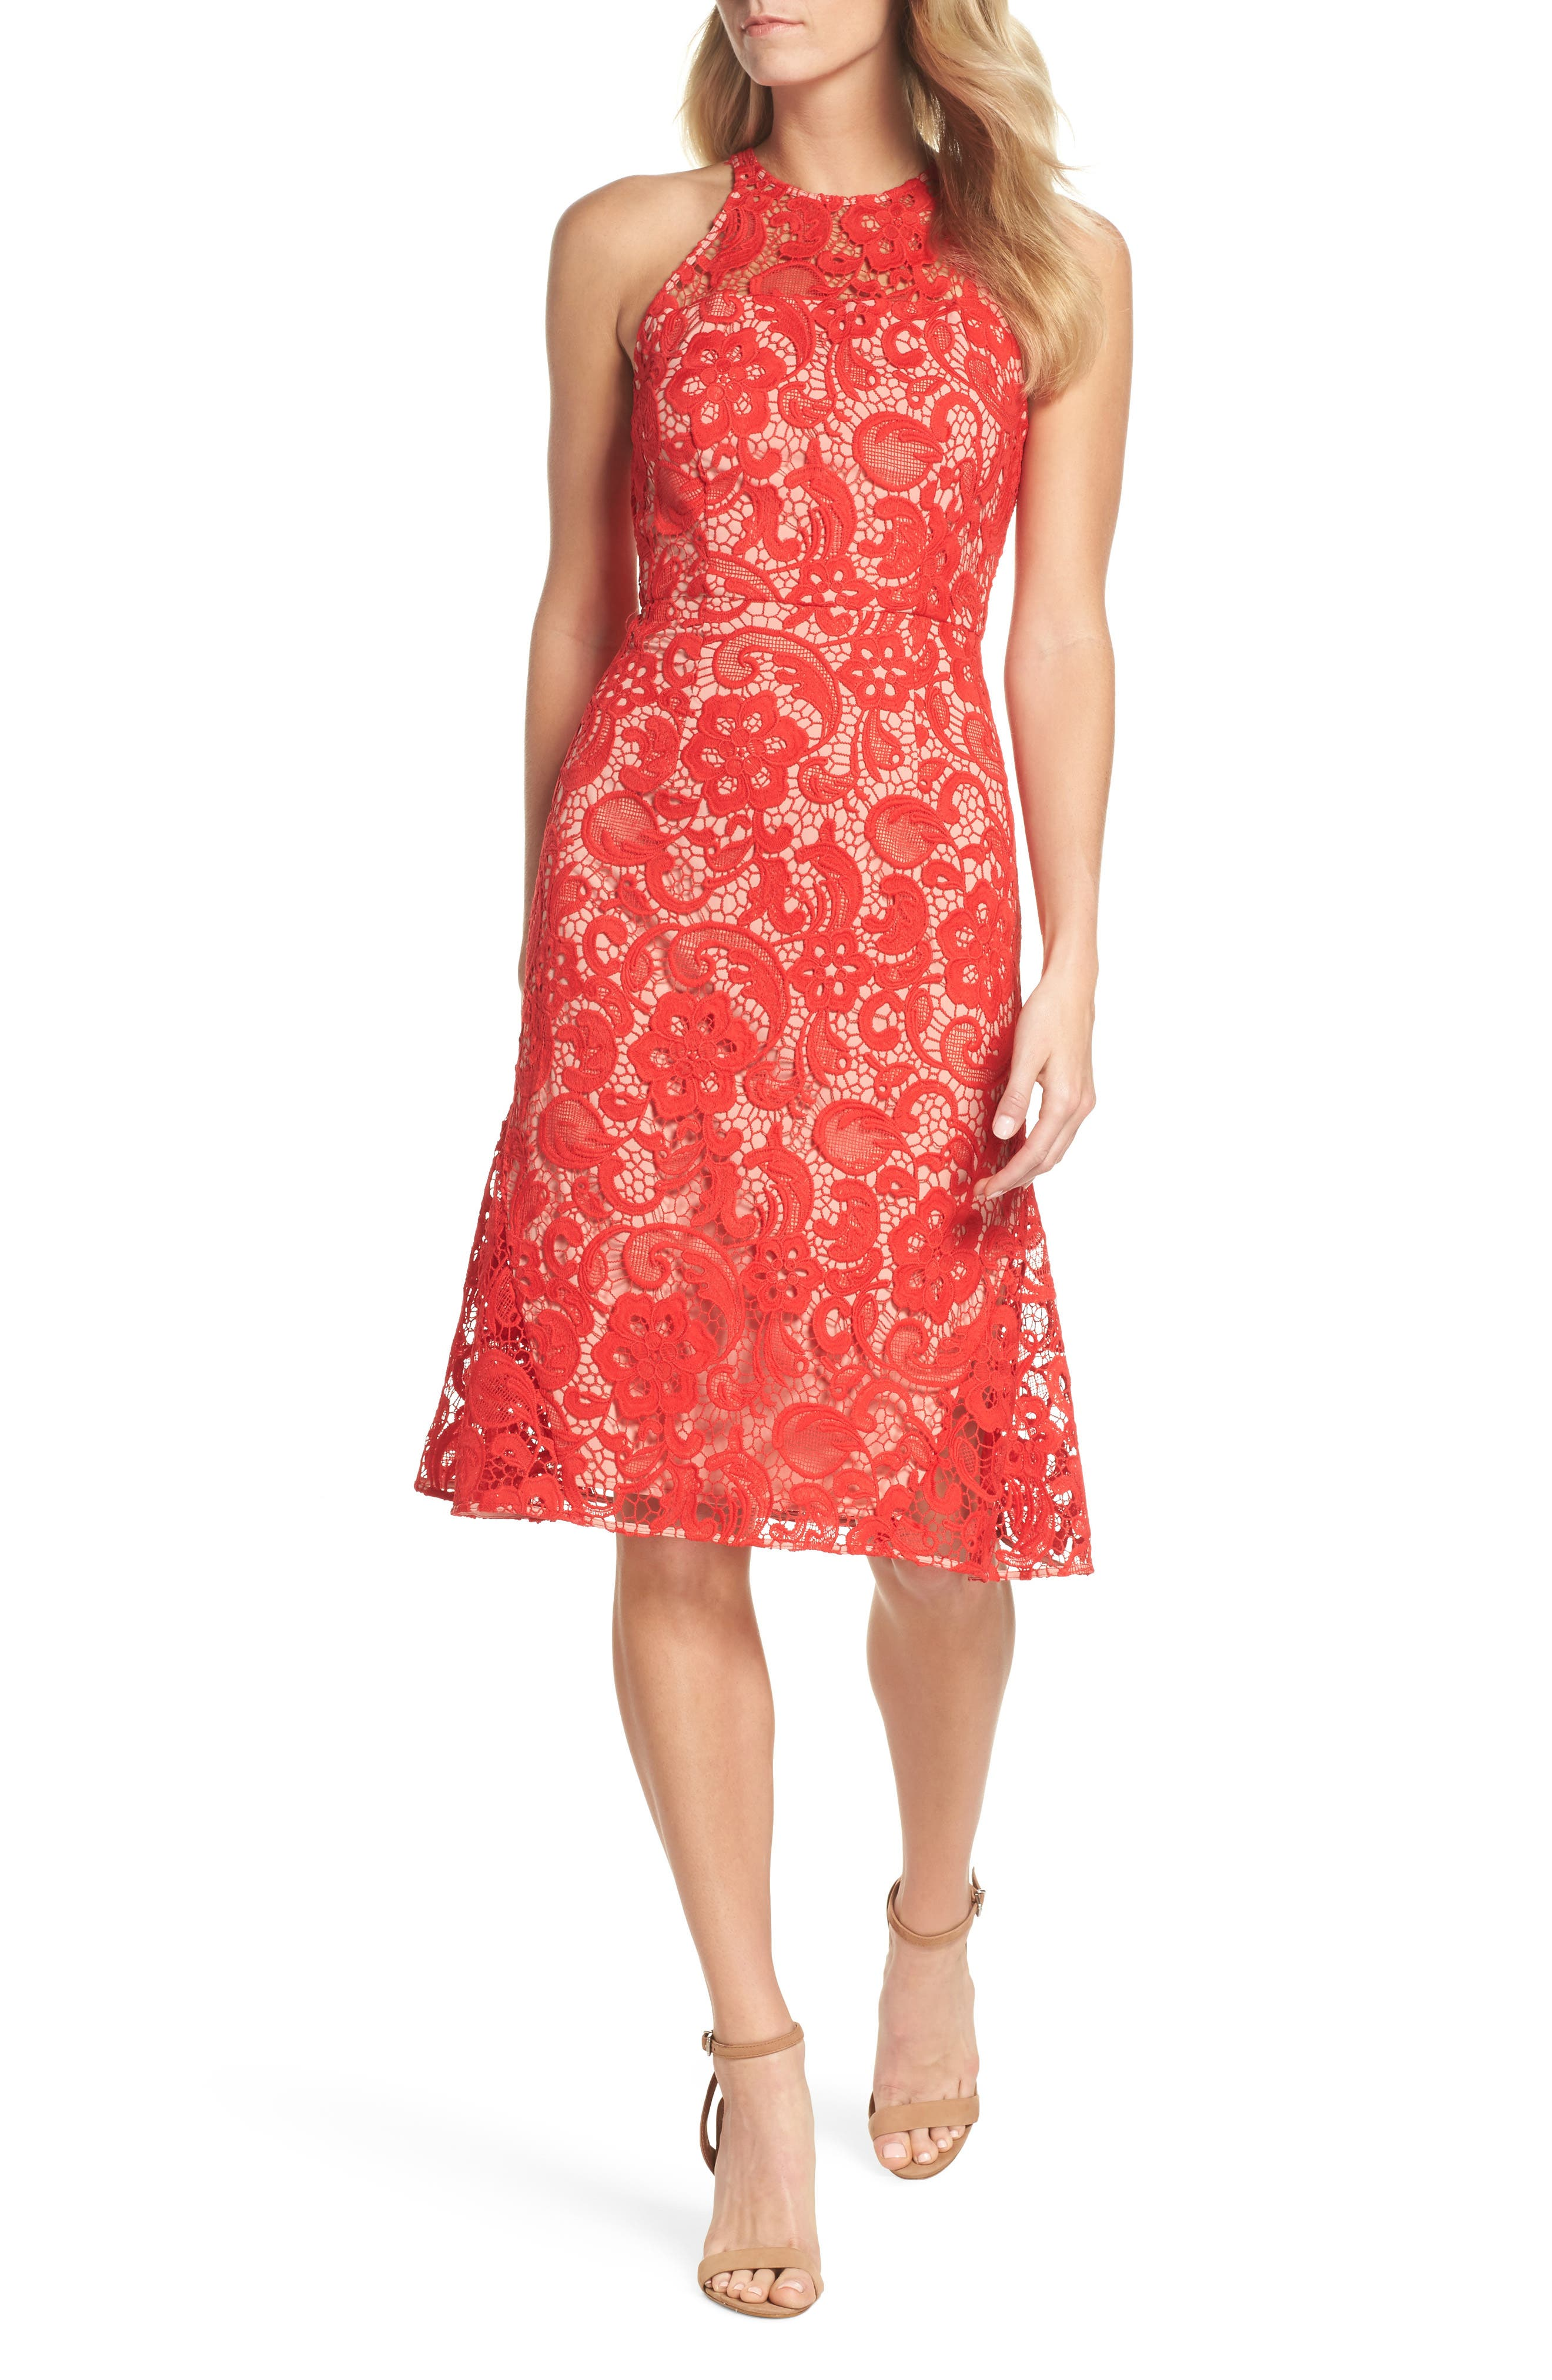 Carnation Lace Dress,                             Main thumbnail 1, color,                             Red Fiery